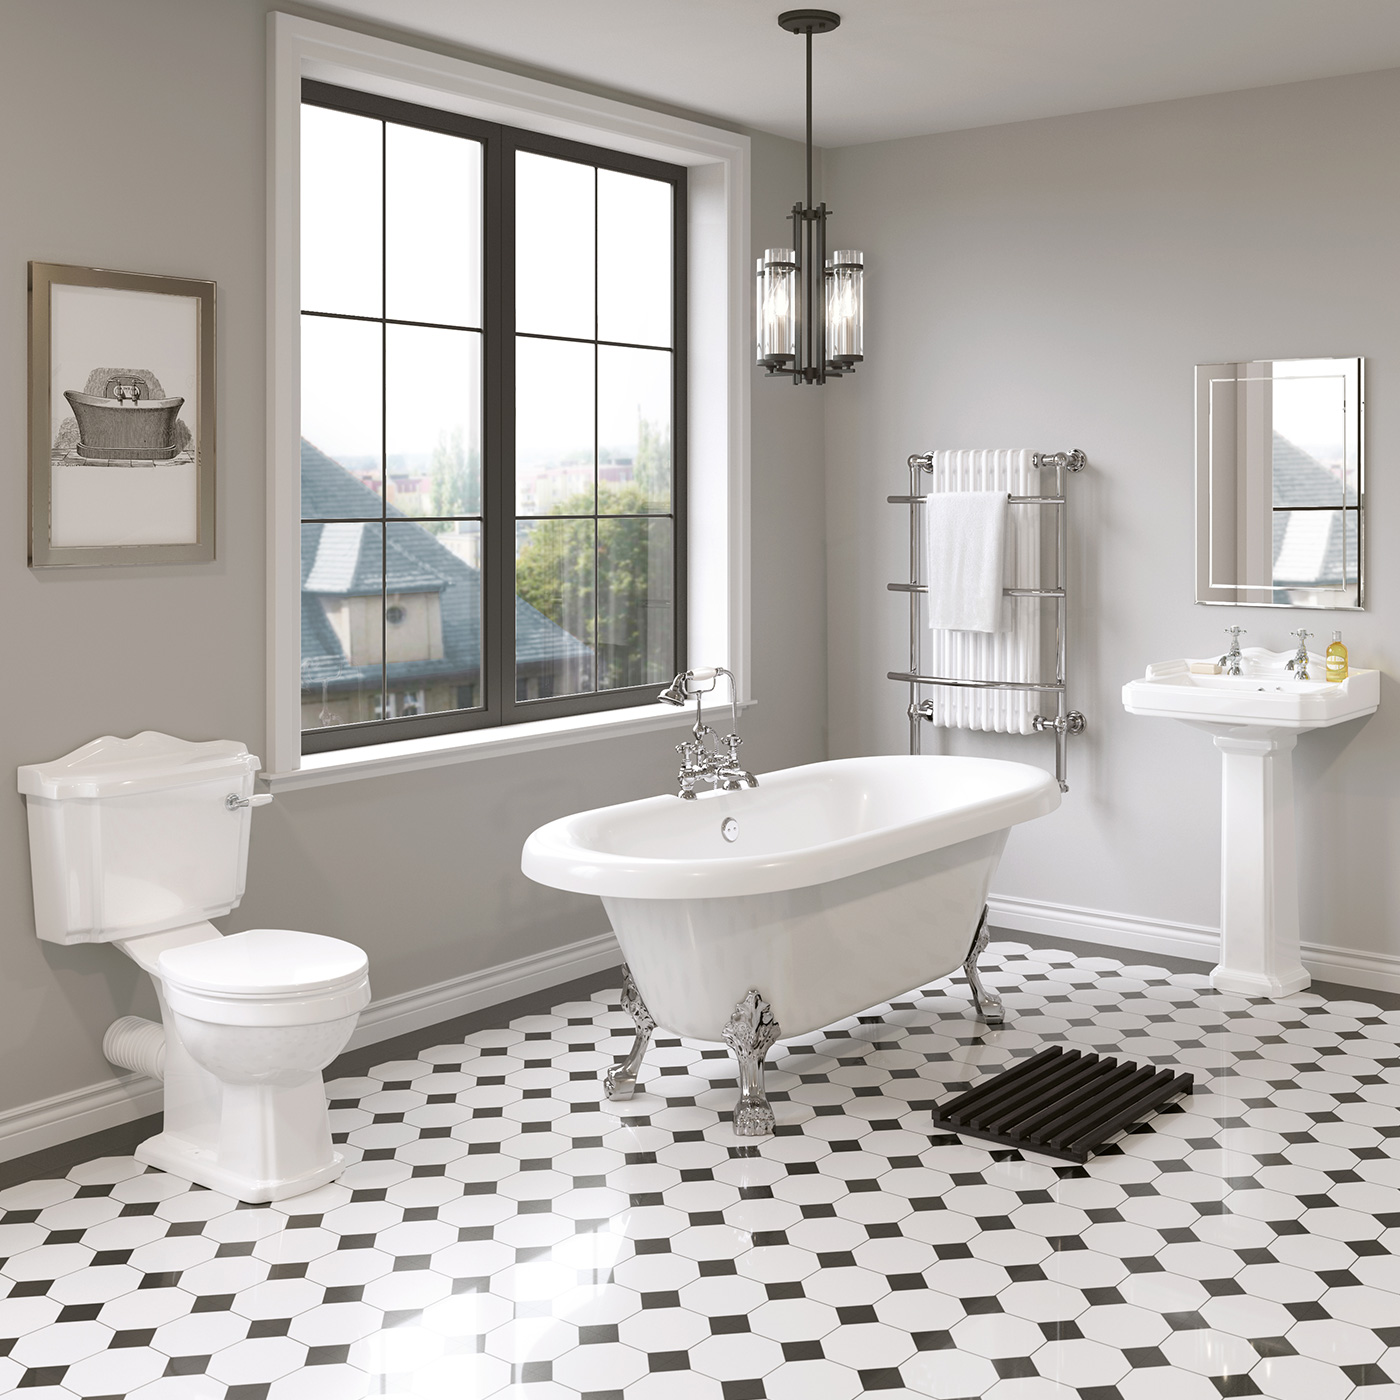 Bathroom suites accessories woodhouse sturnham ltd for Bathroom suite ideas